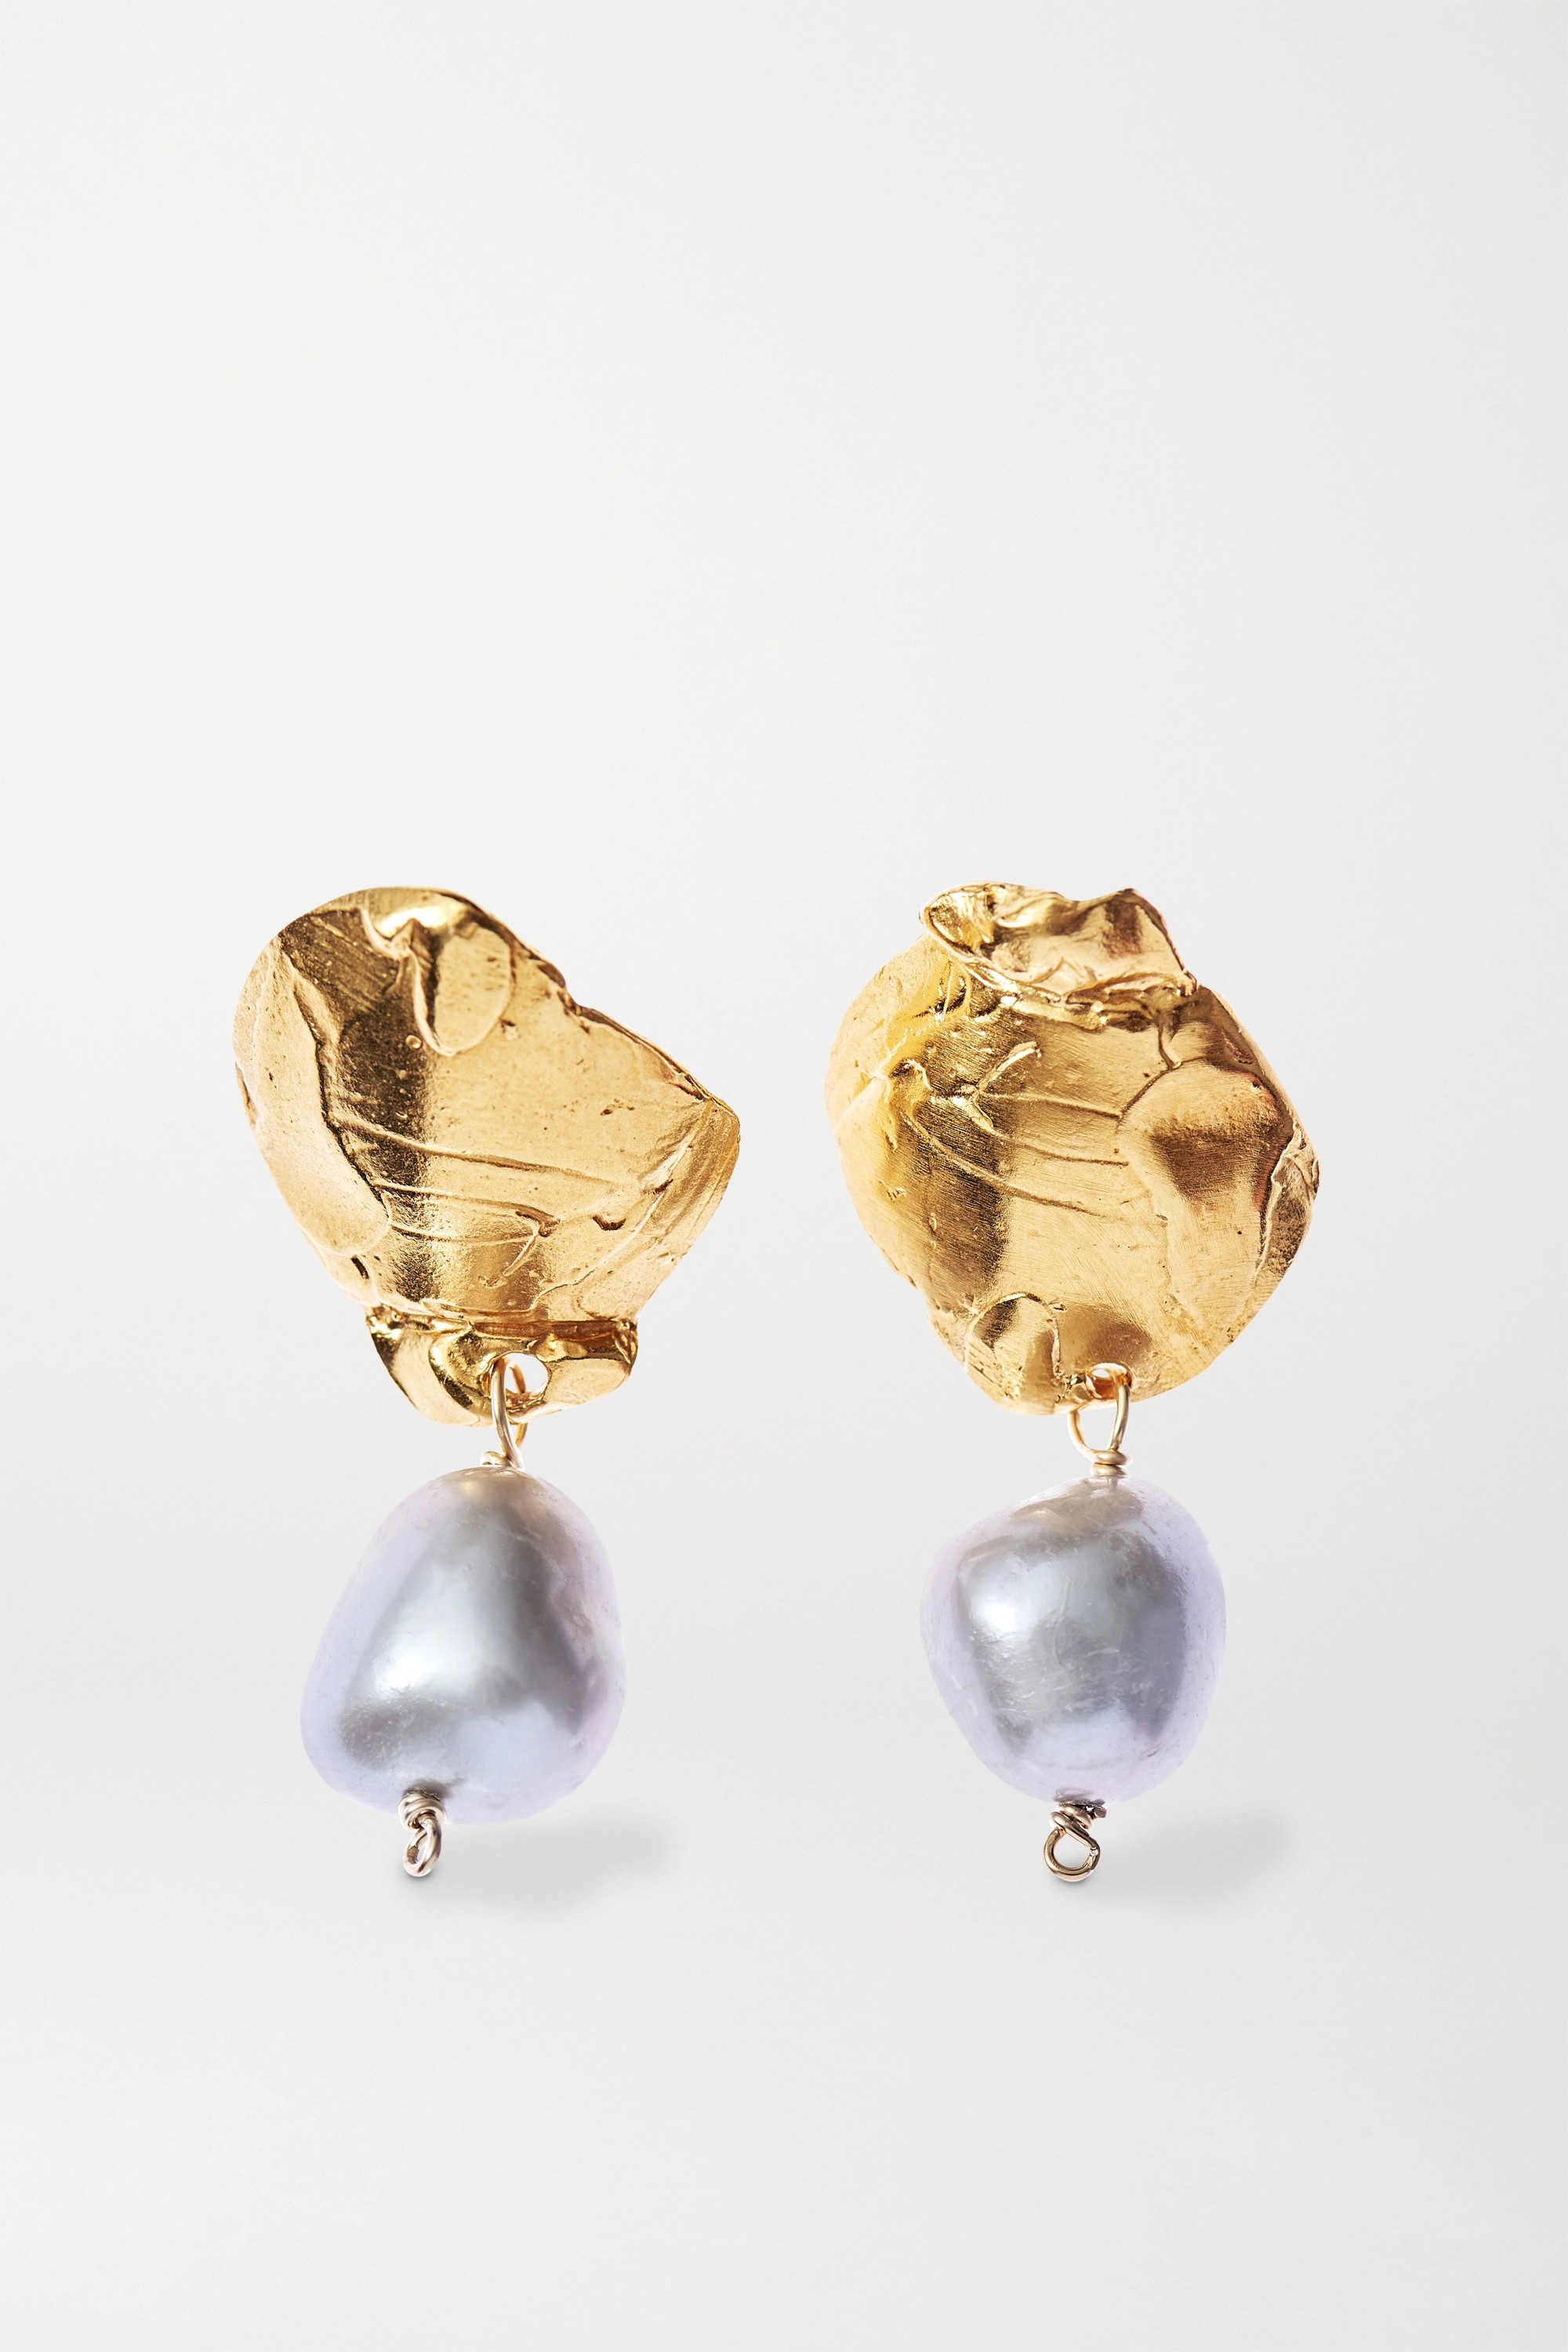 Alighieri Solitary Tear at Dusk gold-plated pearl earrings